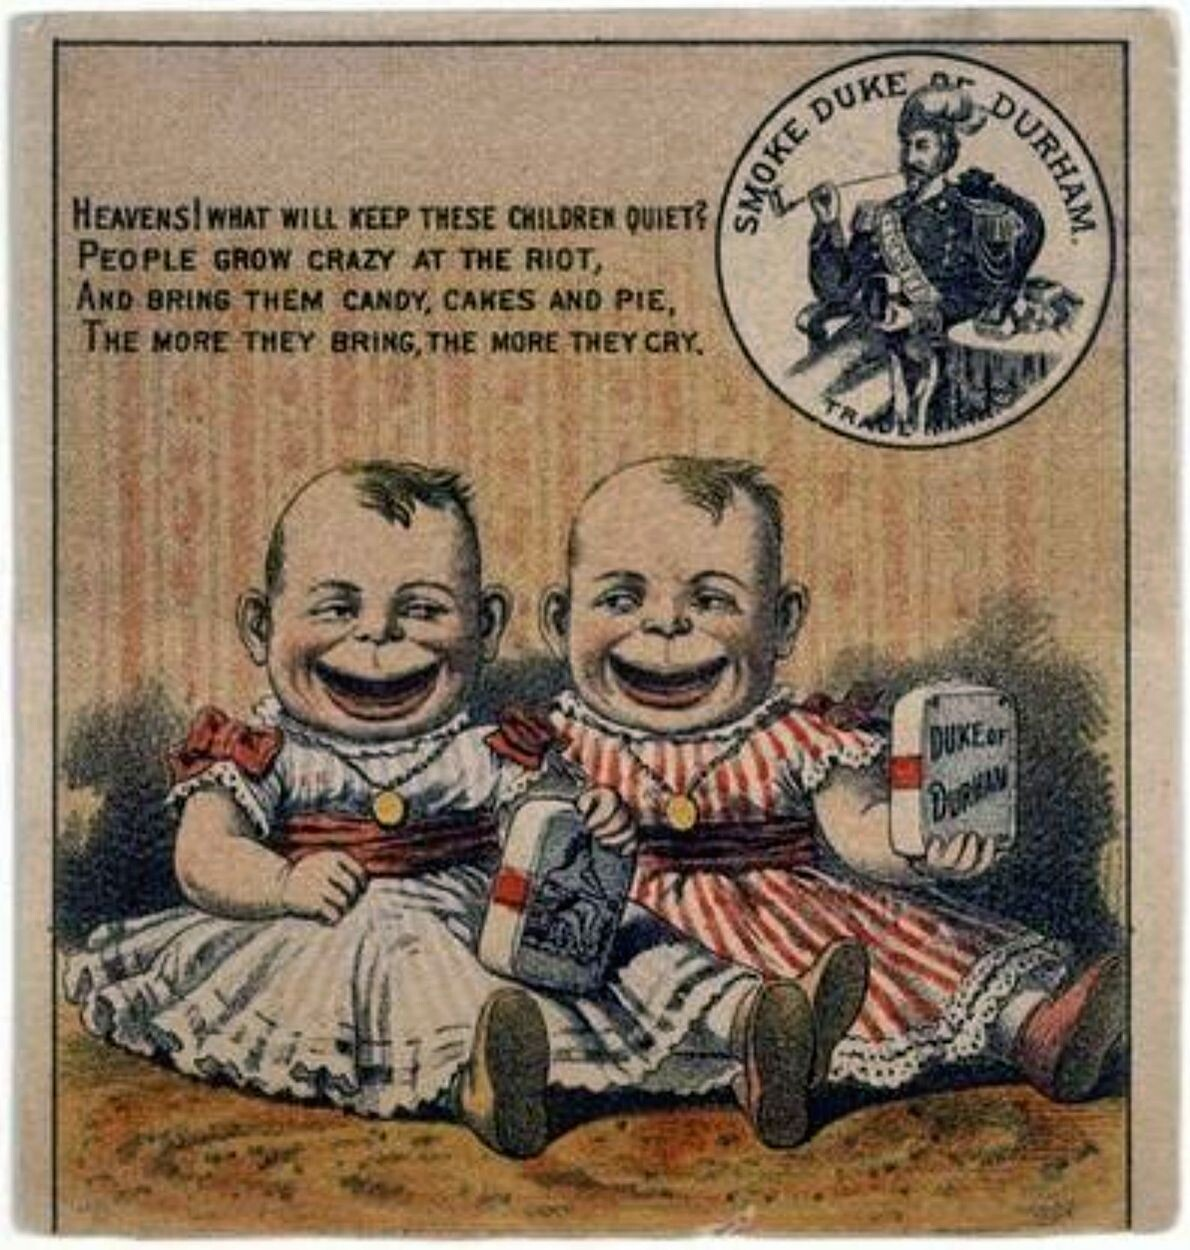 CLUB GIGGLE creepy-ads18 Top 24 Vintage Ads With Creepy Children....